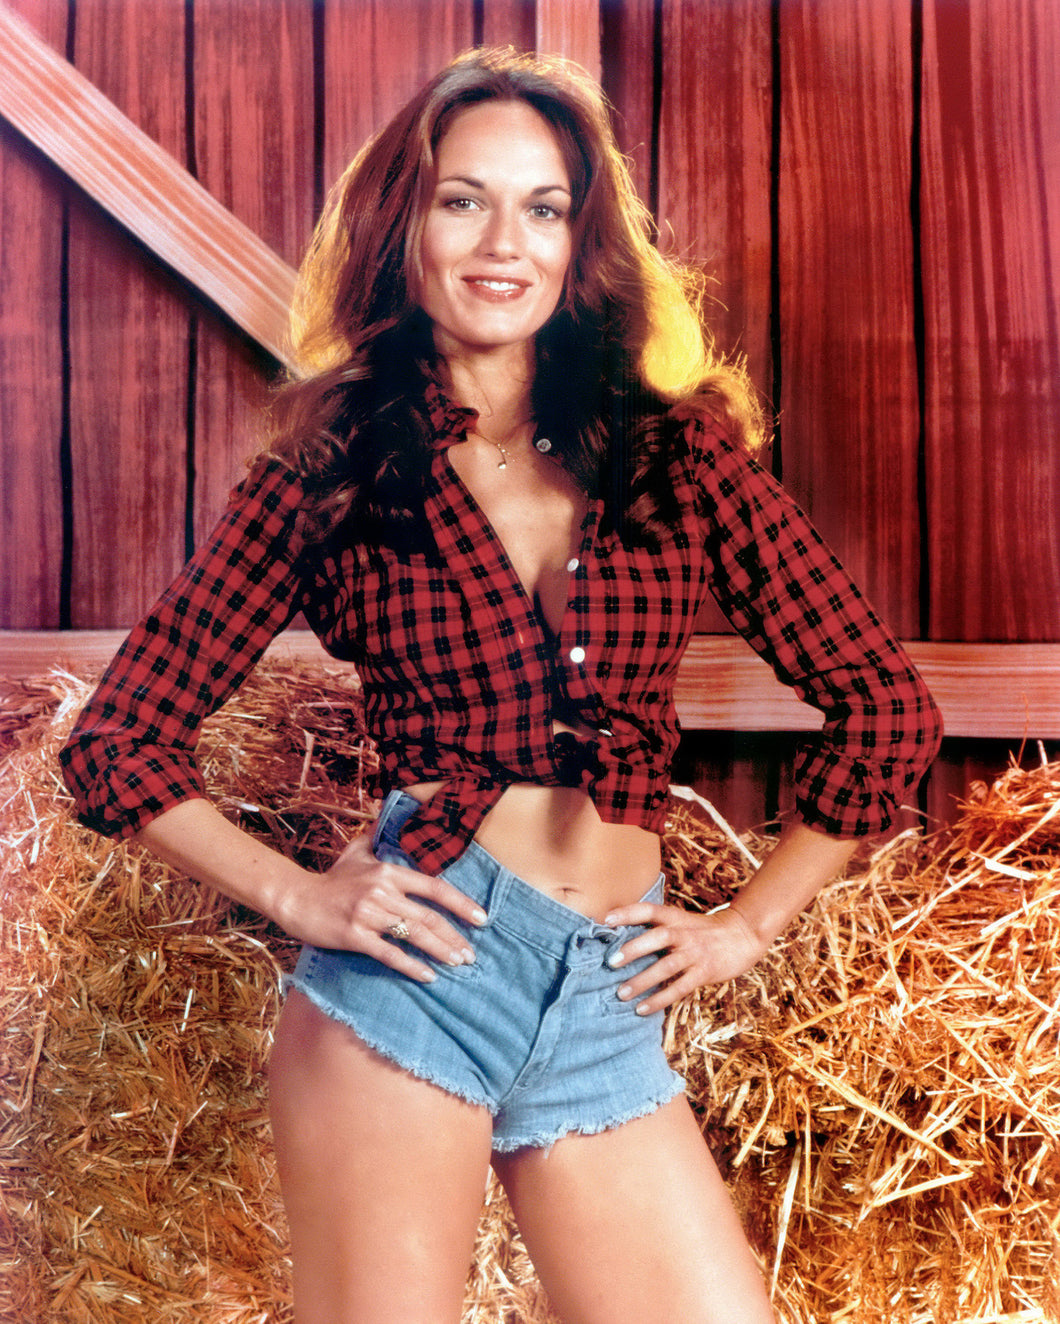 Personalized Signed Photo: Iconic Daisy in the Barn